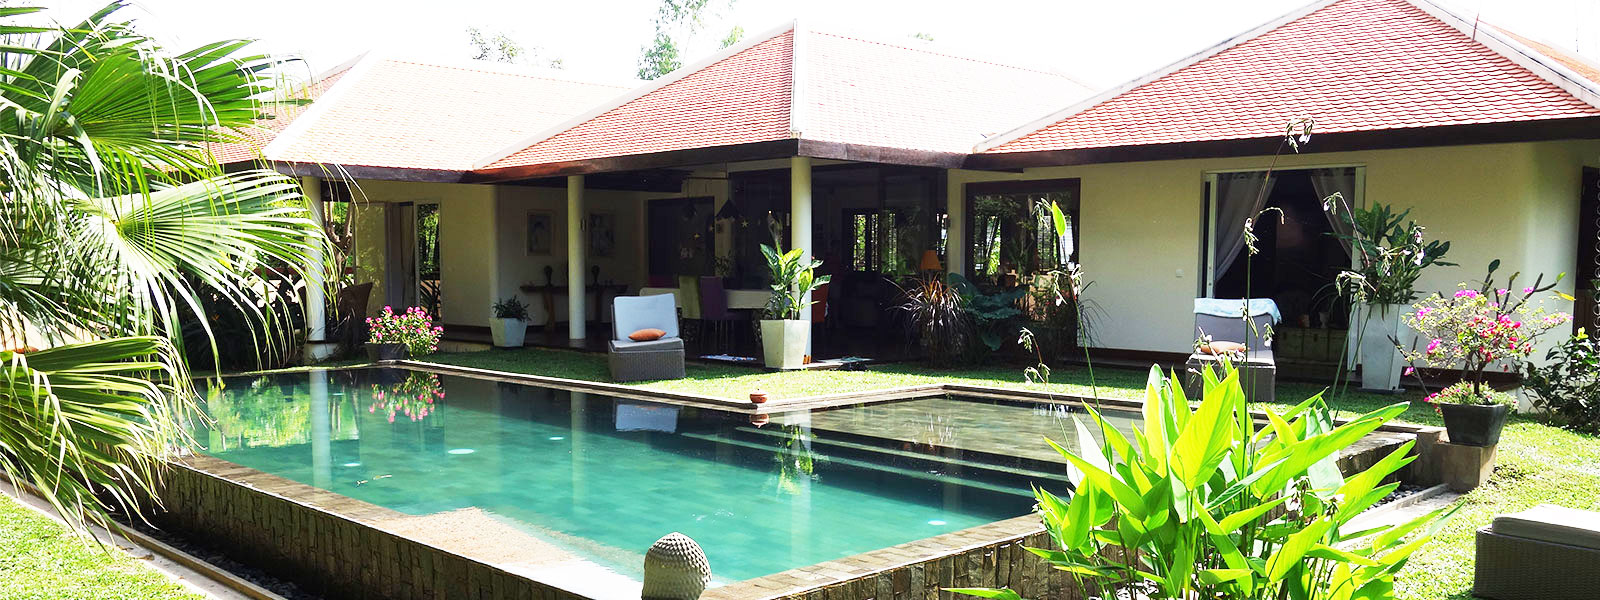 3 Bedroom Villa in Siem Reap